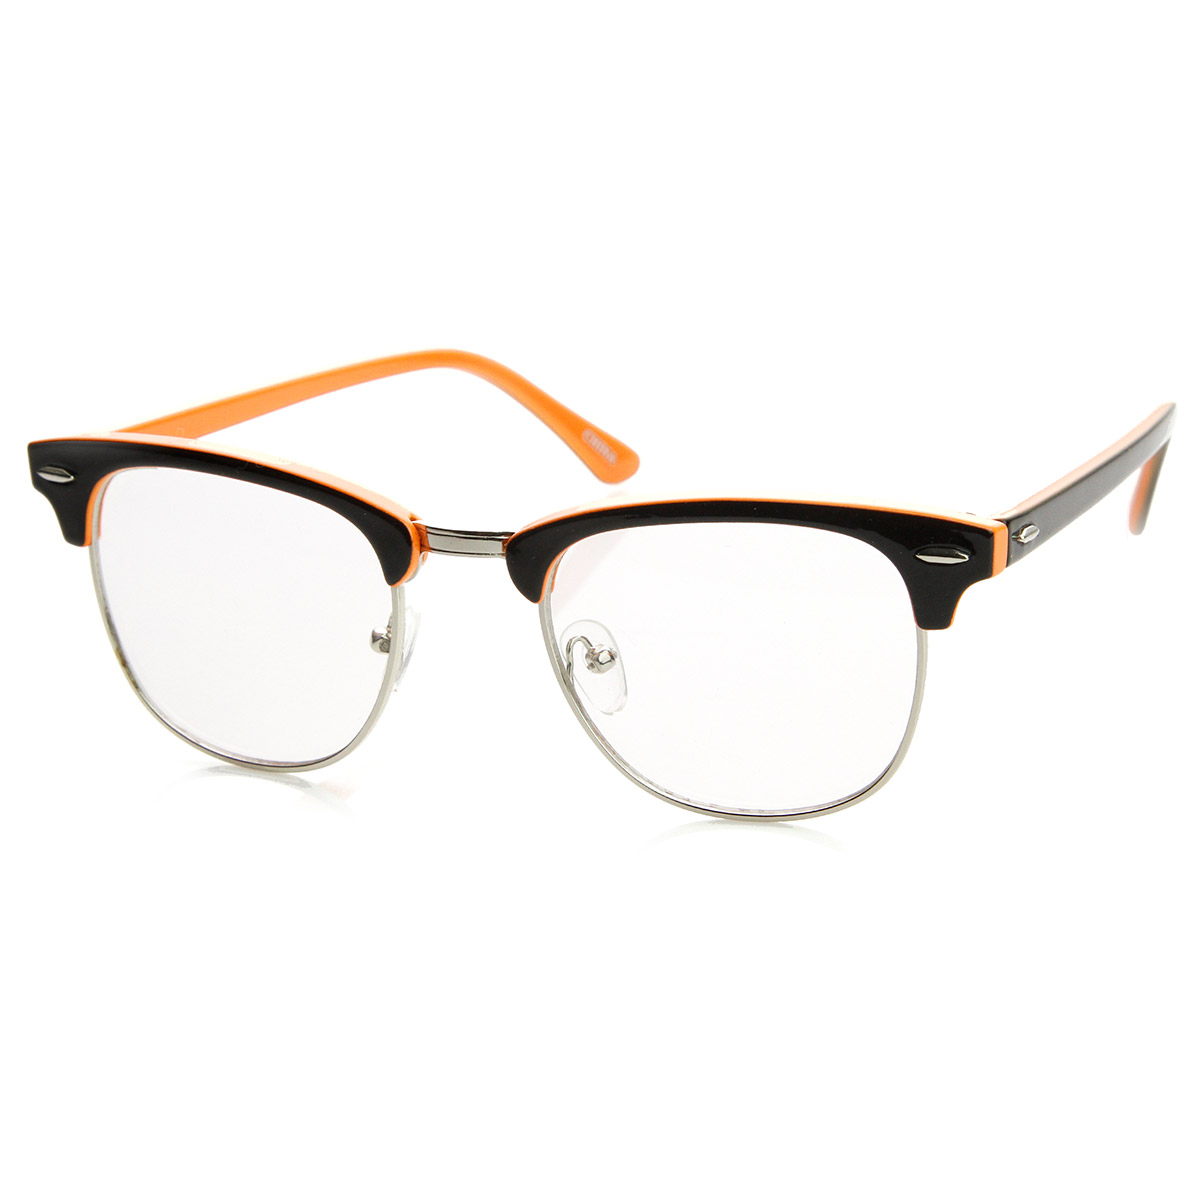 Eyeglass Frames Two Tone : Two-Tone Colorful Half Frame Clear Lens Horn Rimmed ...